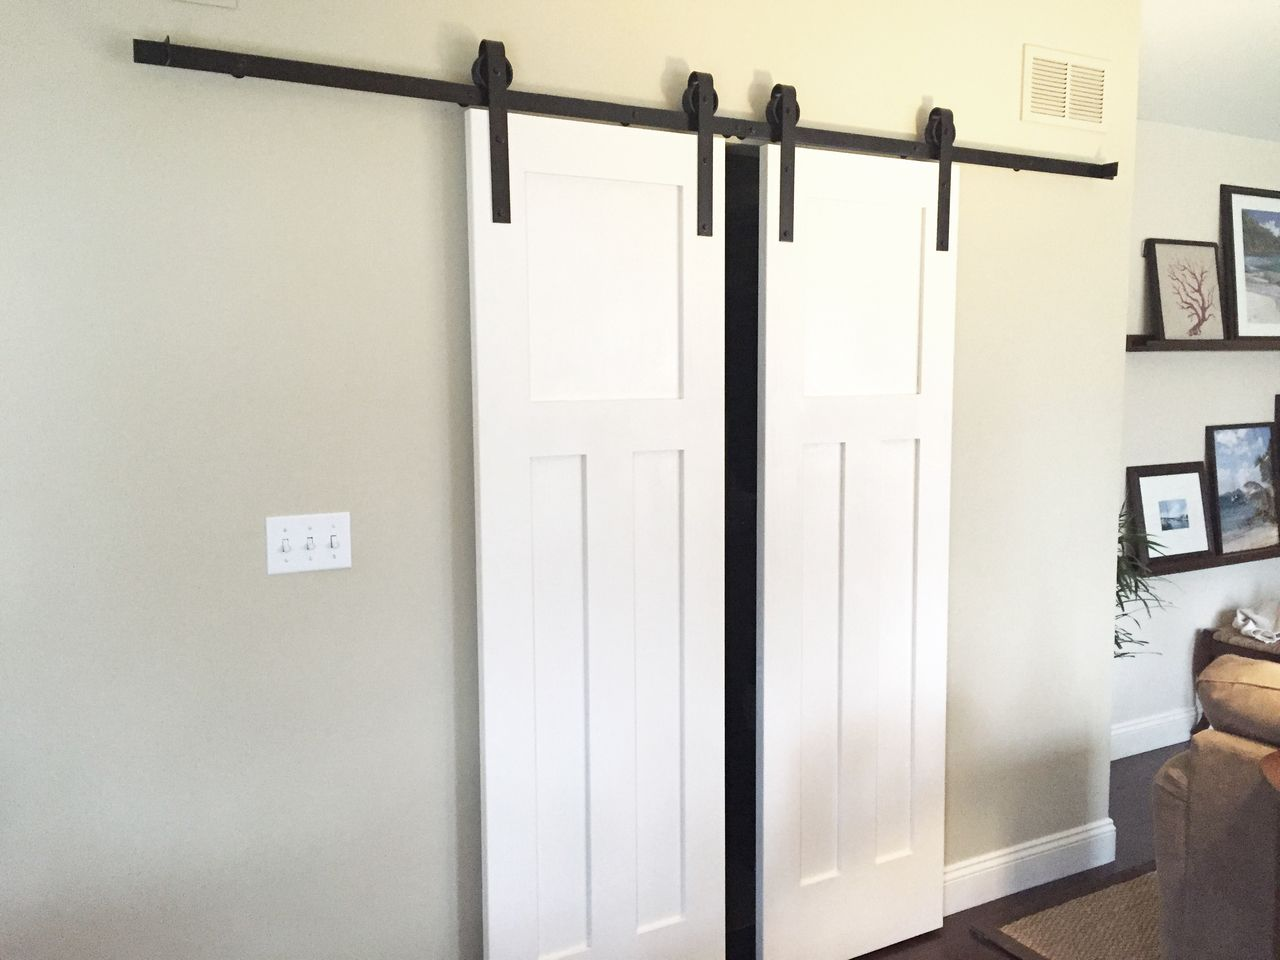 Double Sliding Barn Door Hardware Kit For Two Doors With 12 Feet Track 144 Made In Usa The Barn Do Double Sliding Barn Doors Interior Barn Doors Barn Door